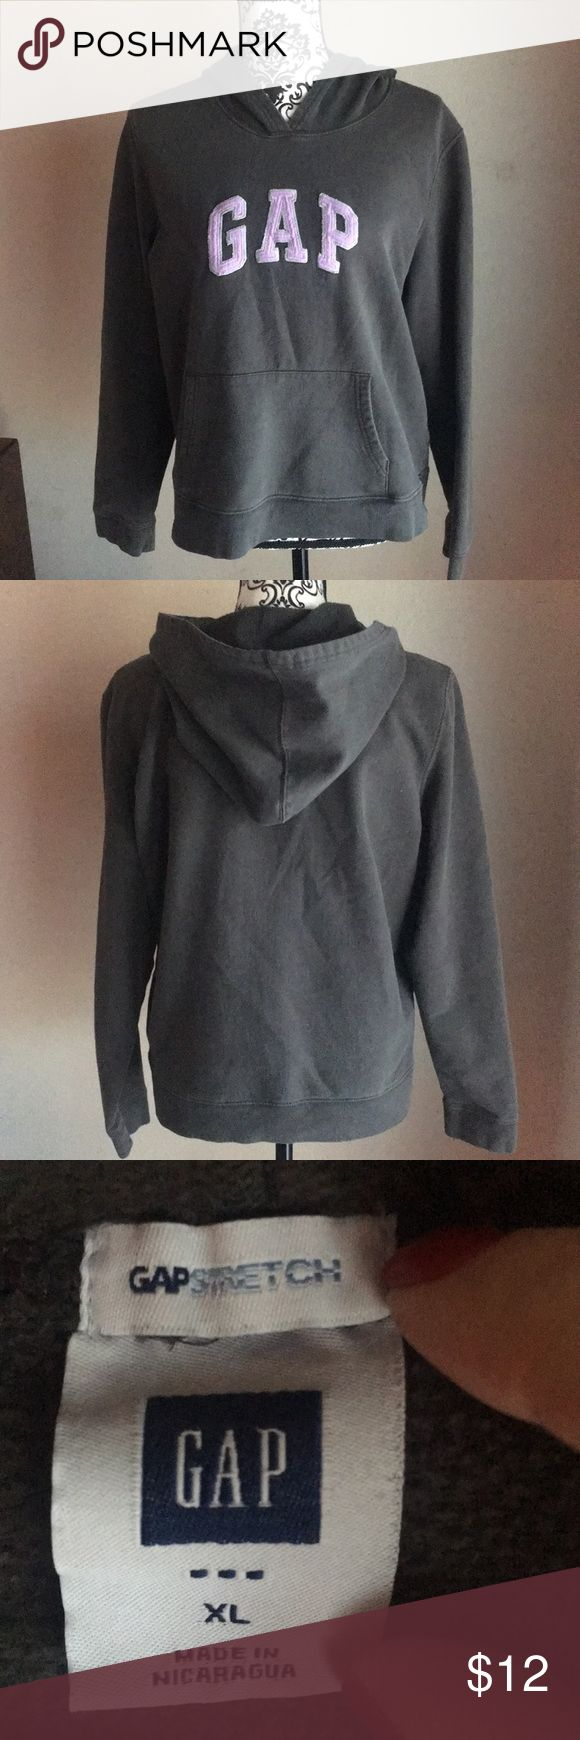 Ladies Sz XL Gap Stretch hoodie sweatshirt GUC Ladies Sz XL Gap Stretch hoodie sweatshirt GUC. Grey shirt with lavender stitched-on lettering. Very soft & comfy! Very good used condition, no holes, snags, tears or stains. Smoke free home. GAP Tops Sweatshirts & Hoodies